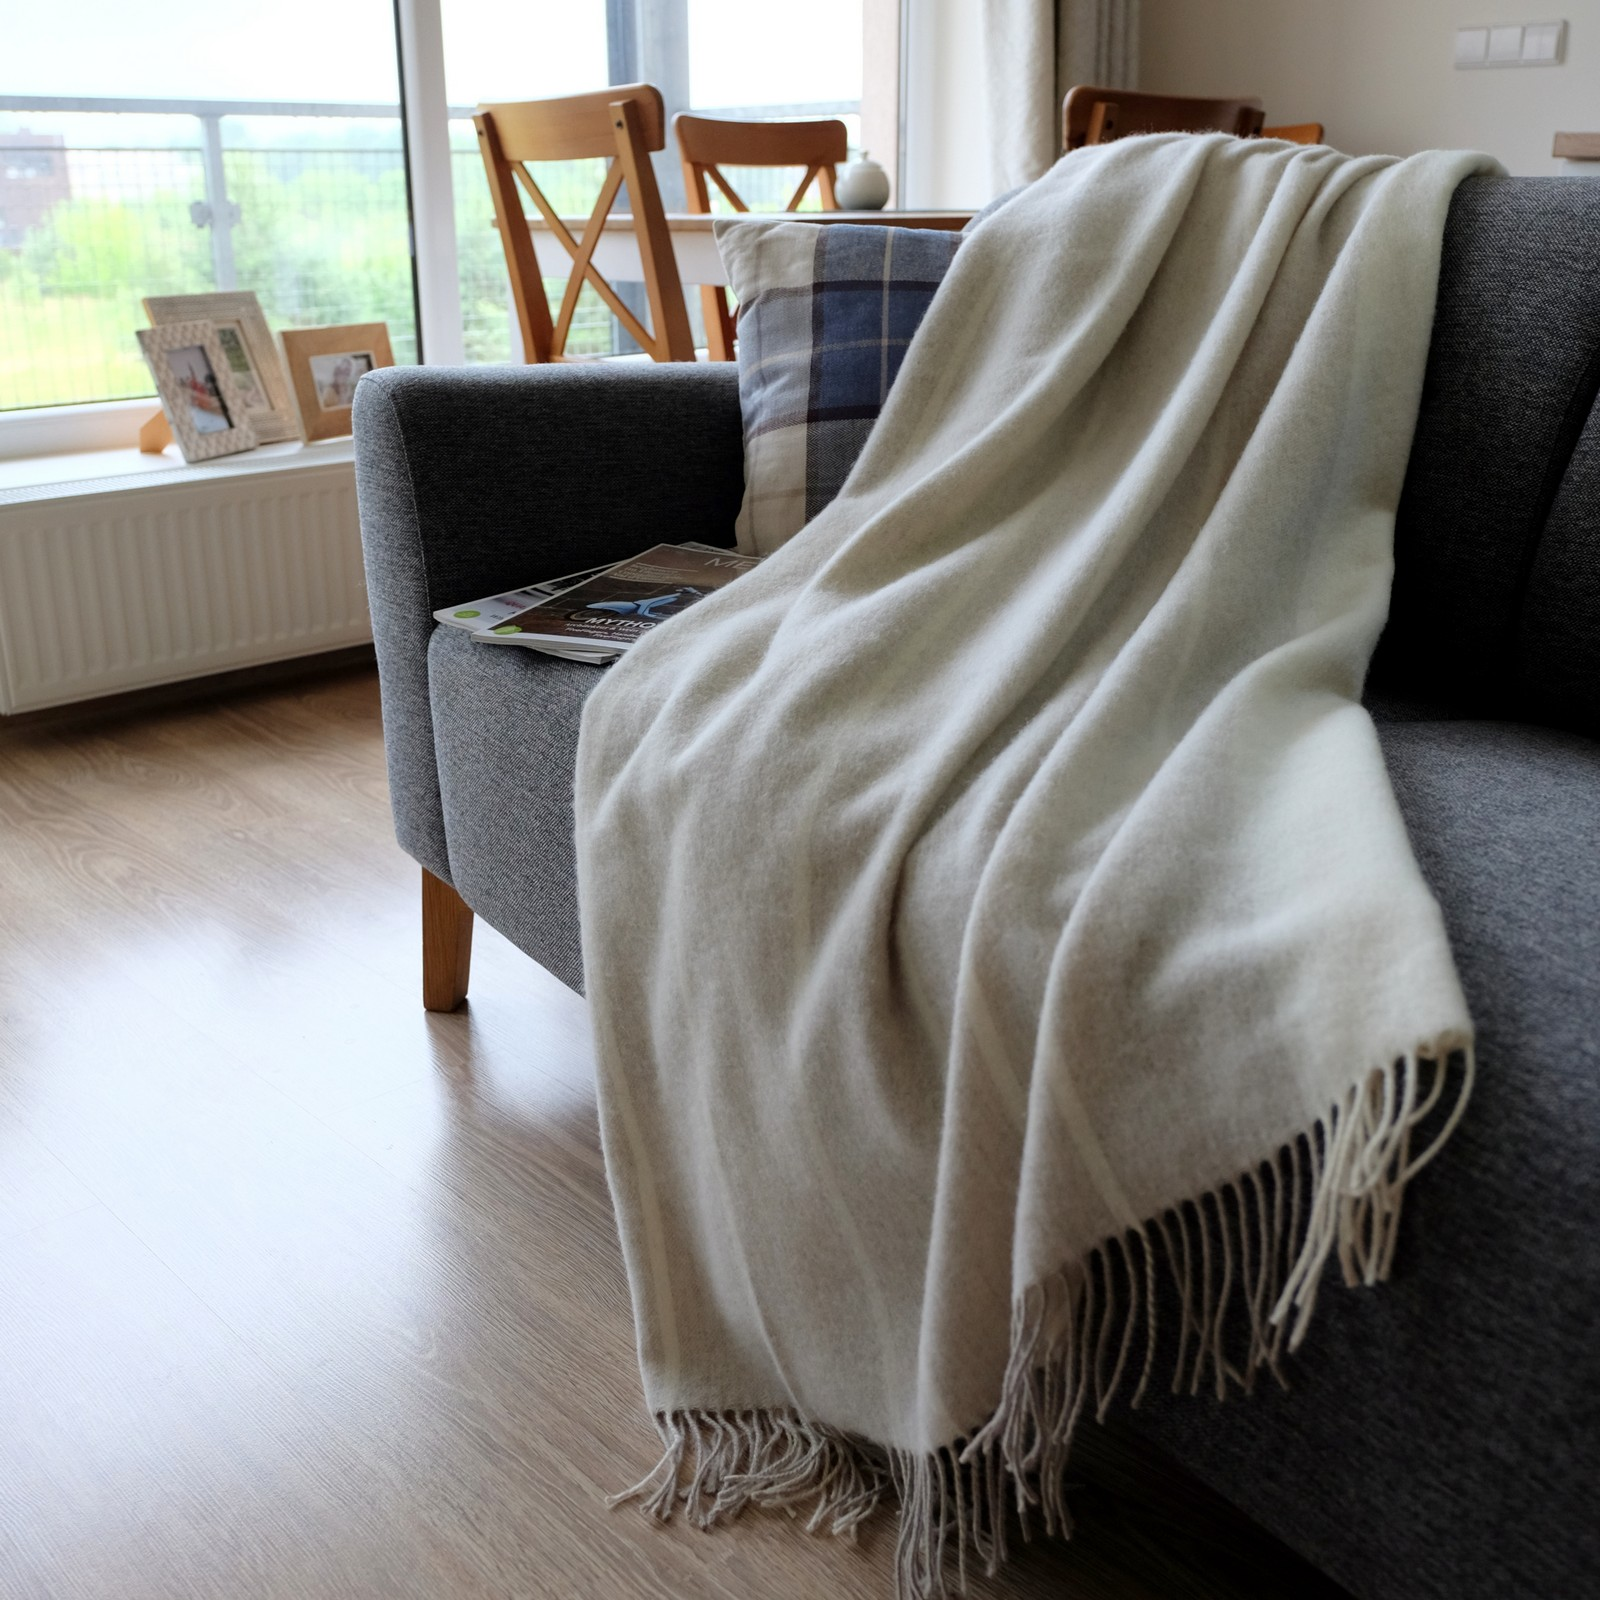 white company sofa throws dr andre sofair waterbury ct luxury extra soft bed throw blanket anna  100